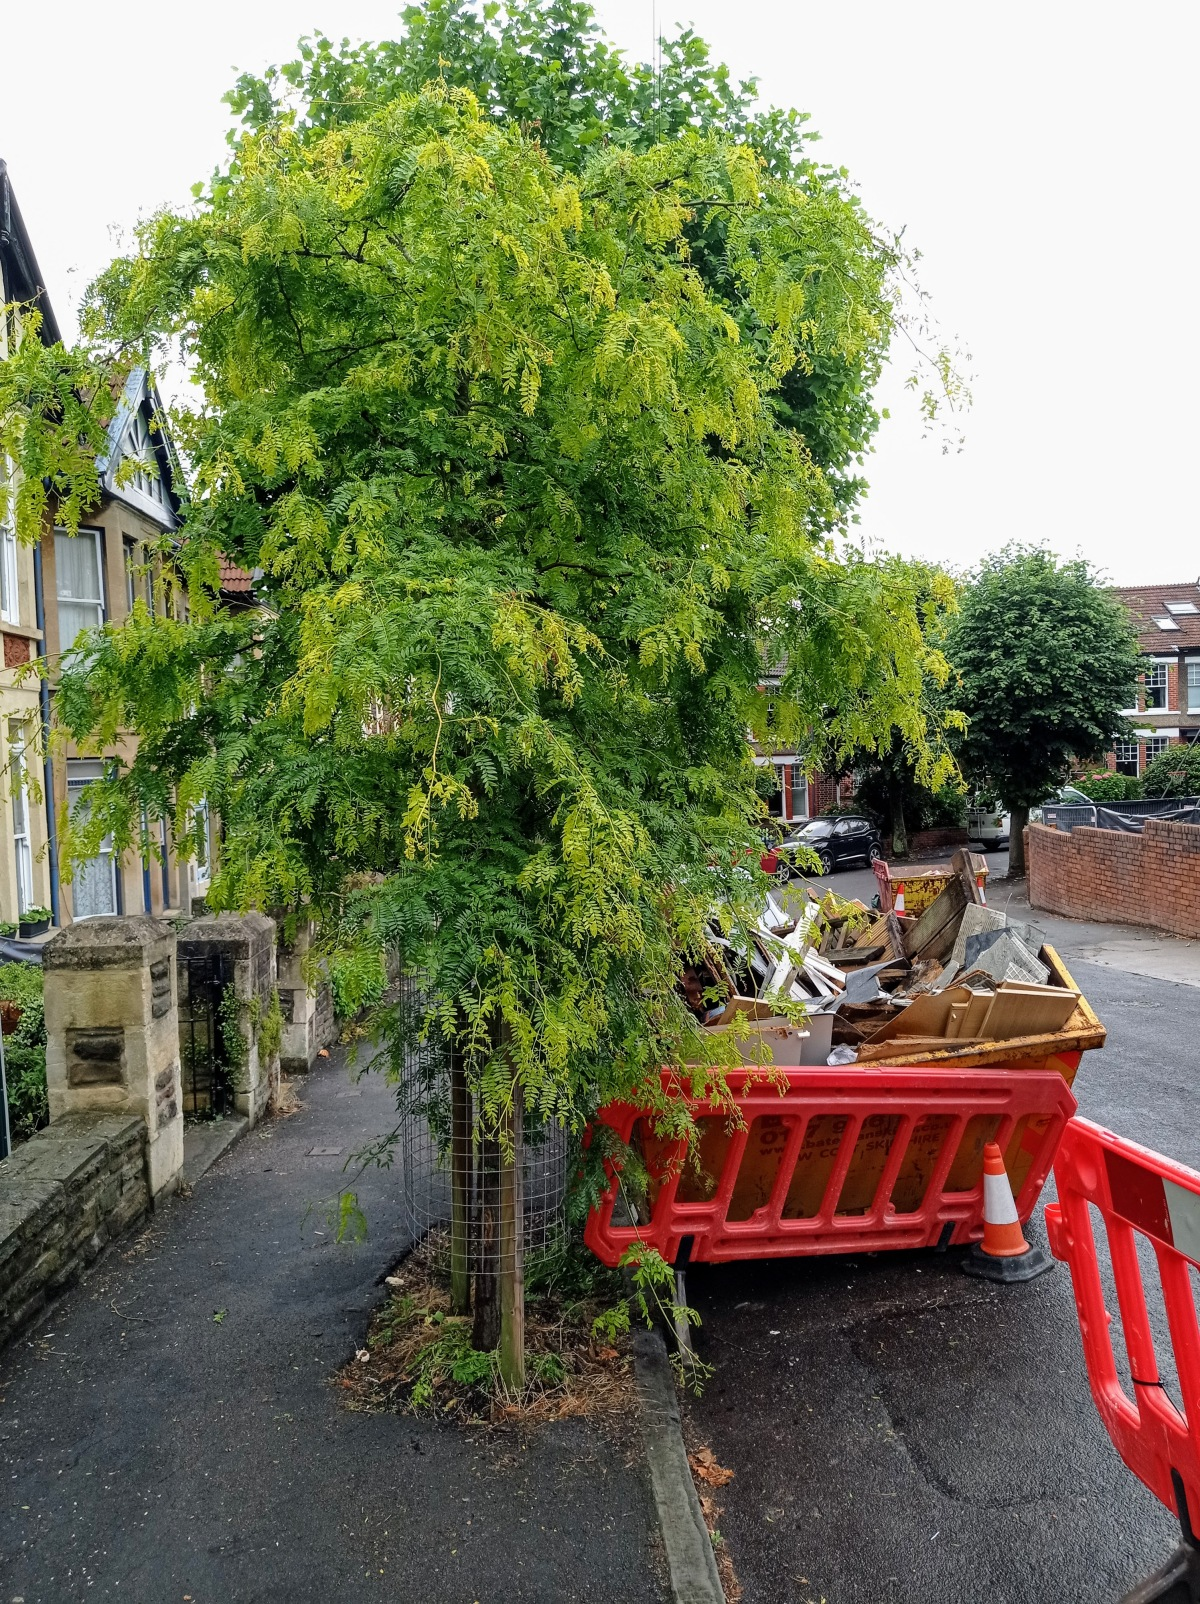 Valuing our urbantrees